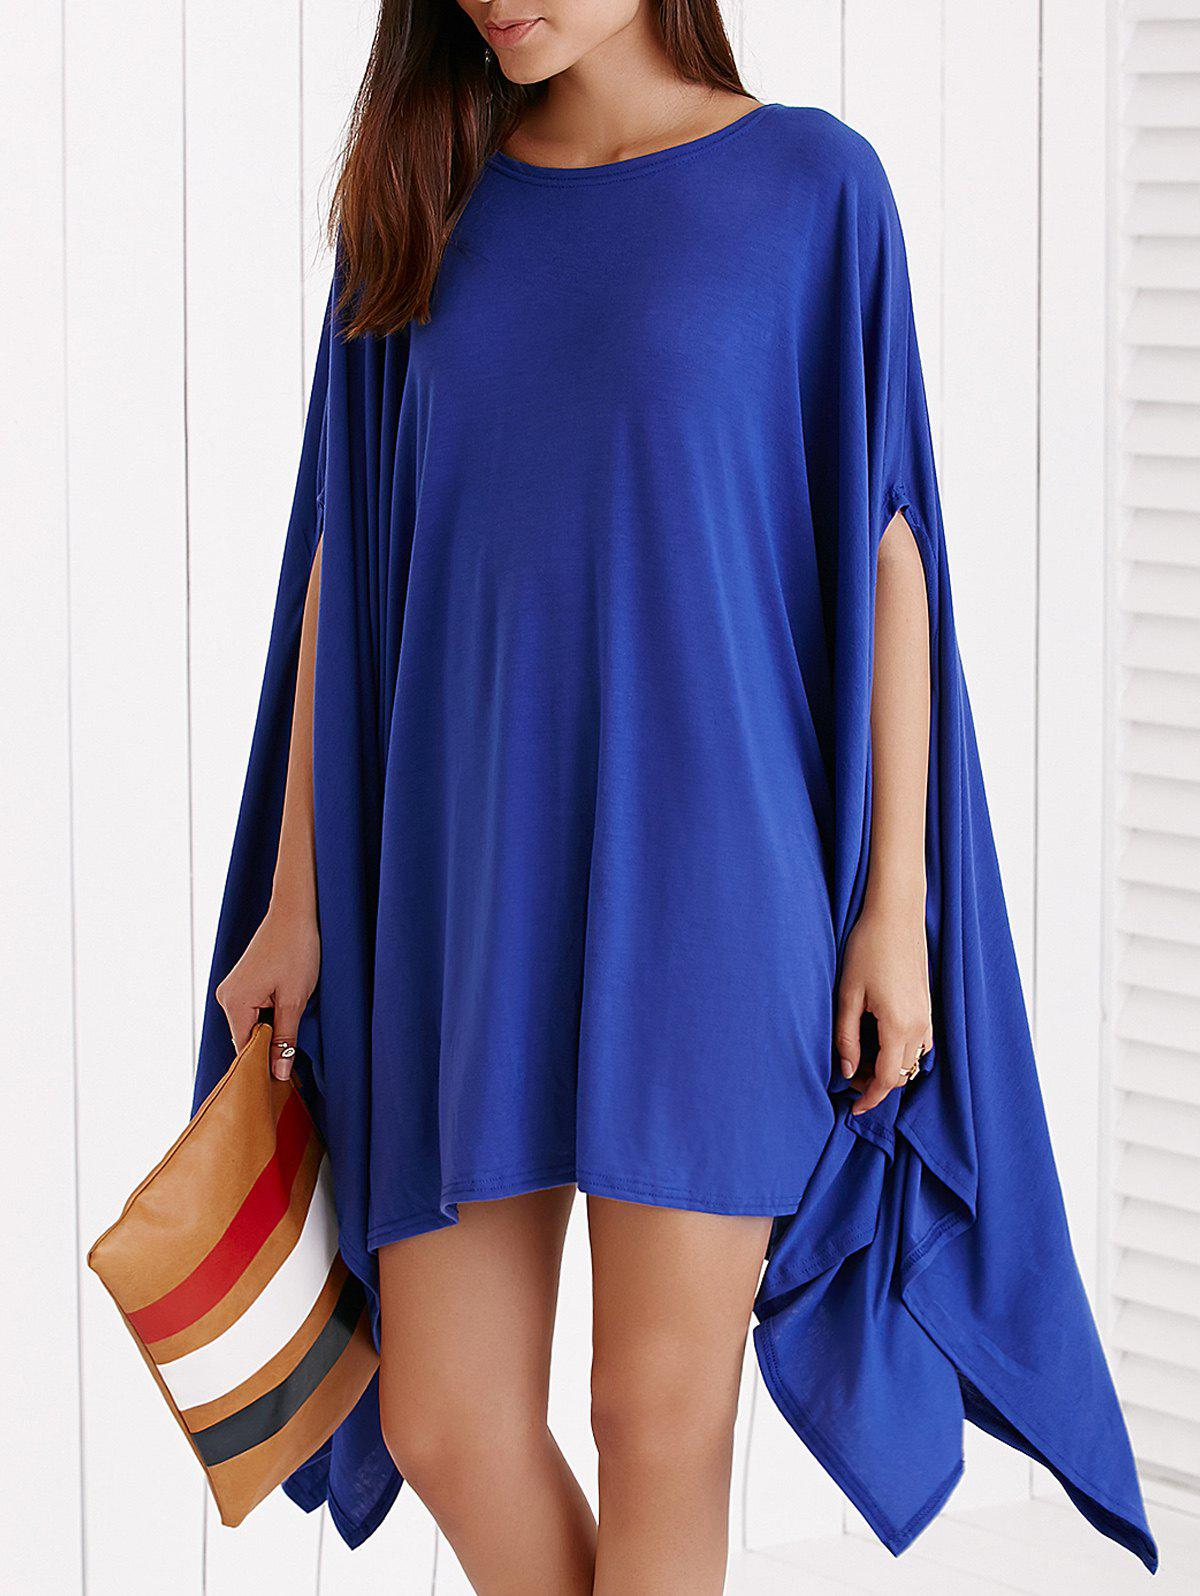 Simple Solid Color Batwing Sleeve Asymmetric Loose Dress - BLUE L